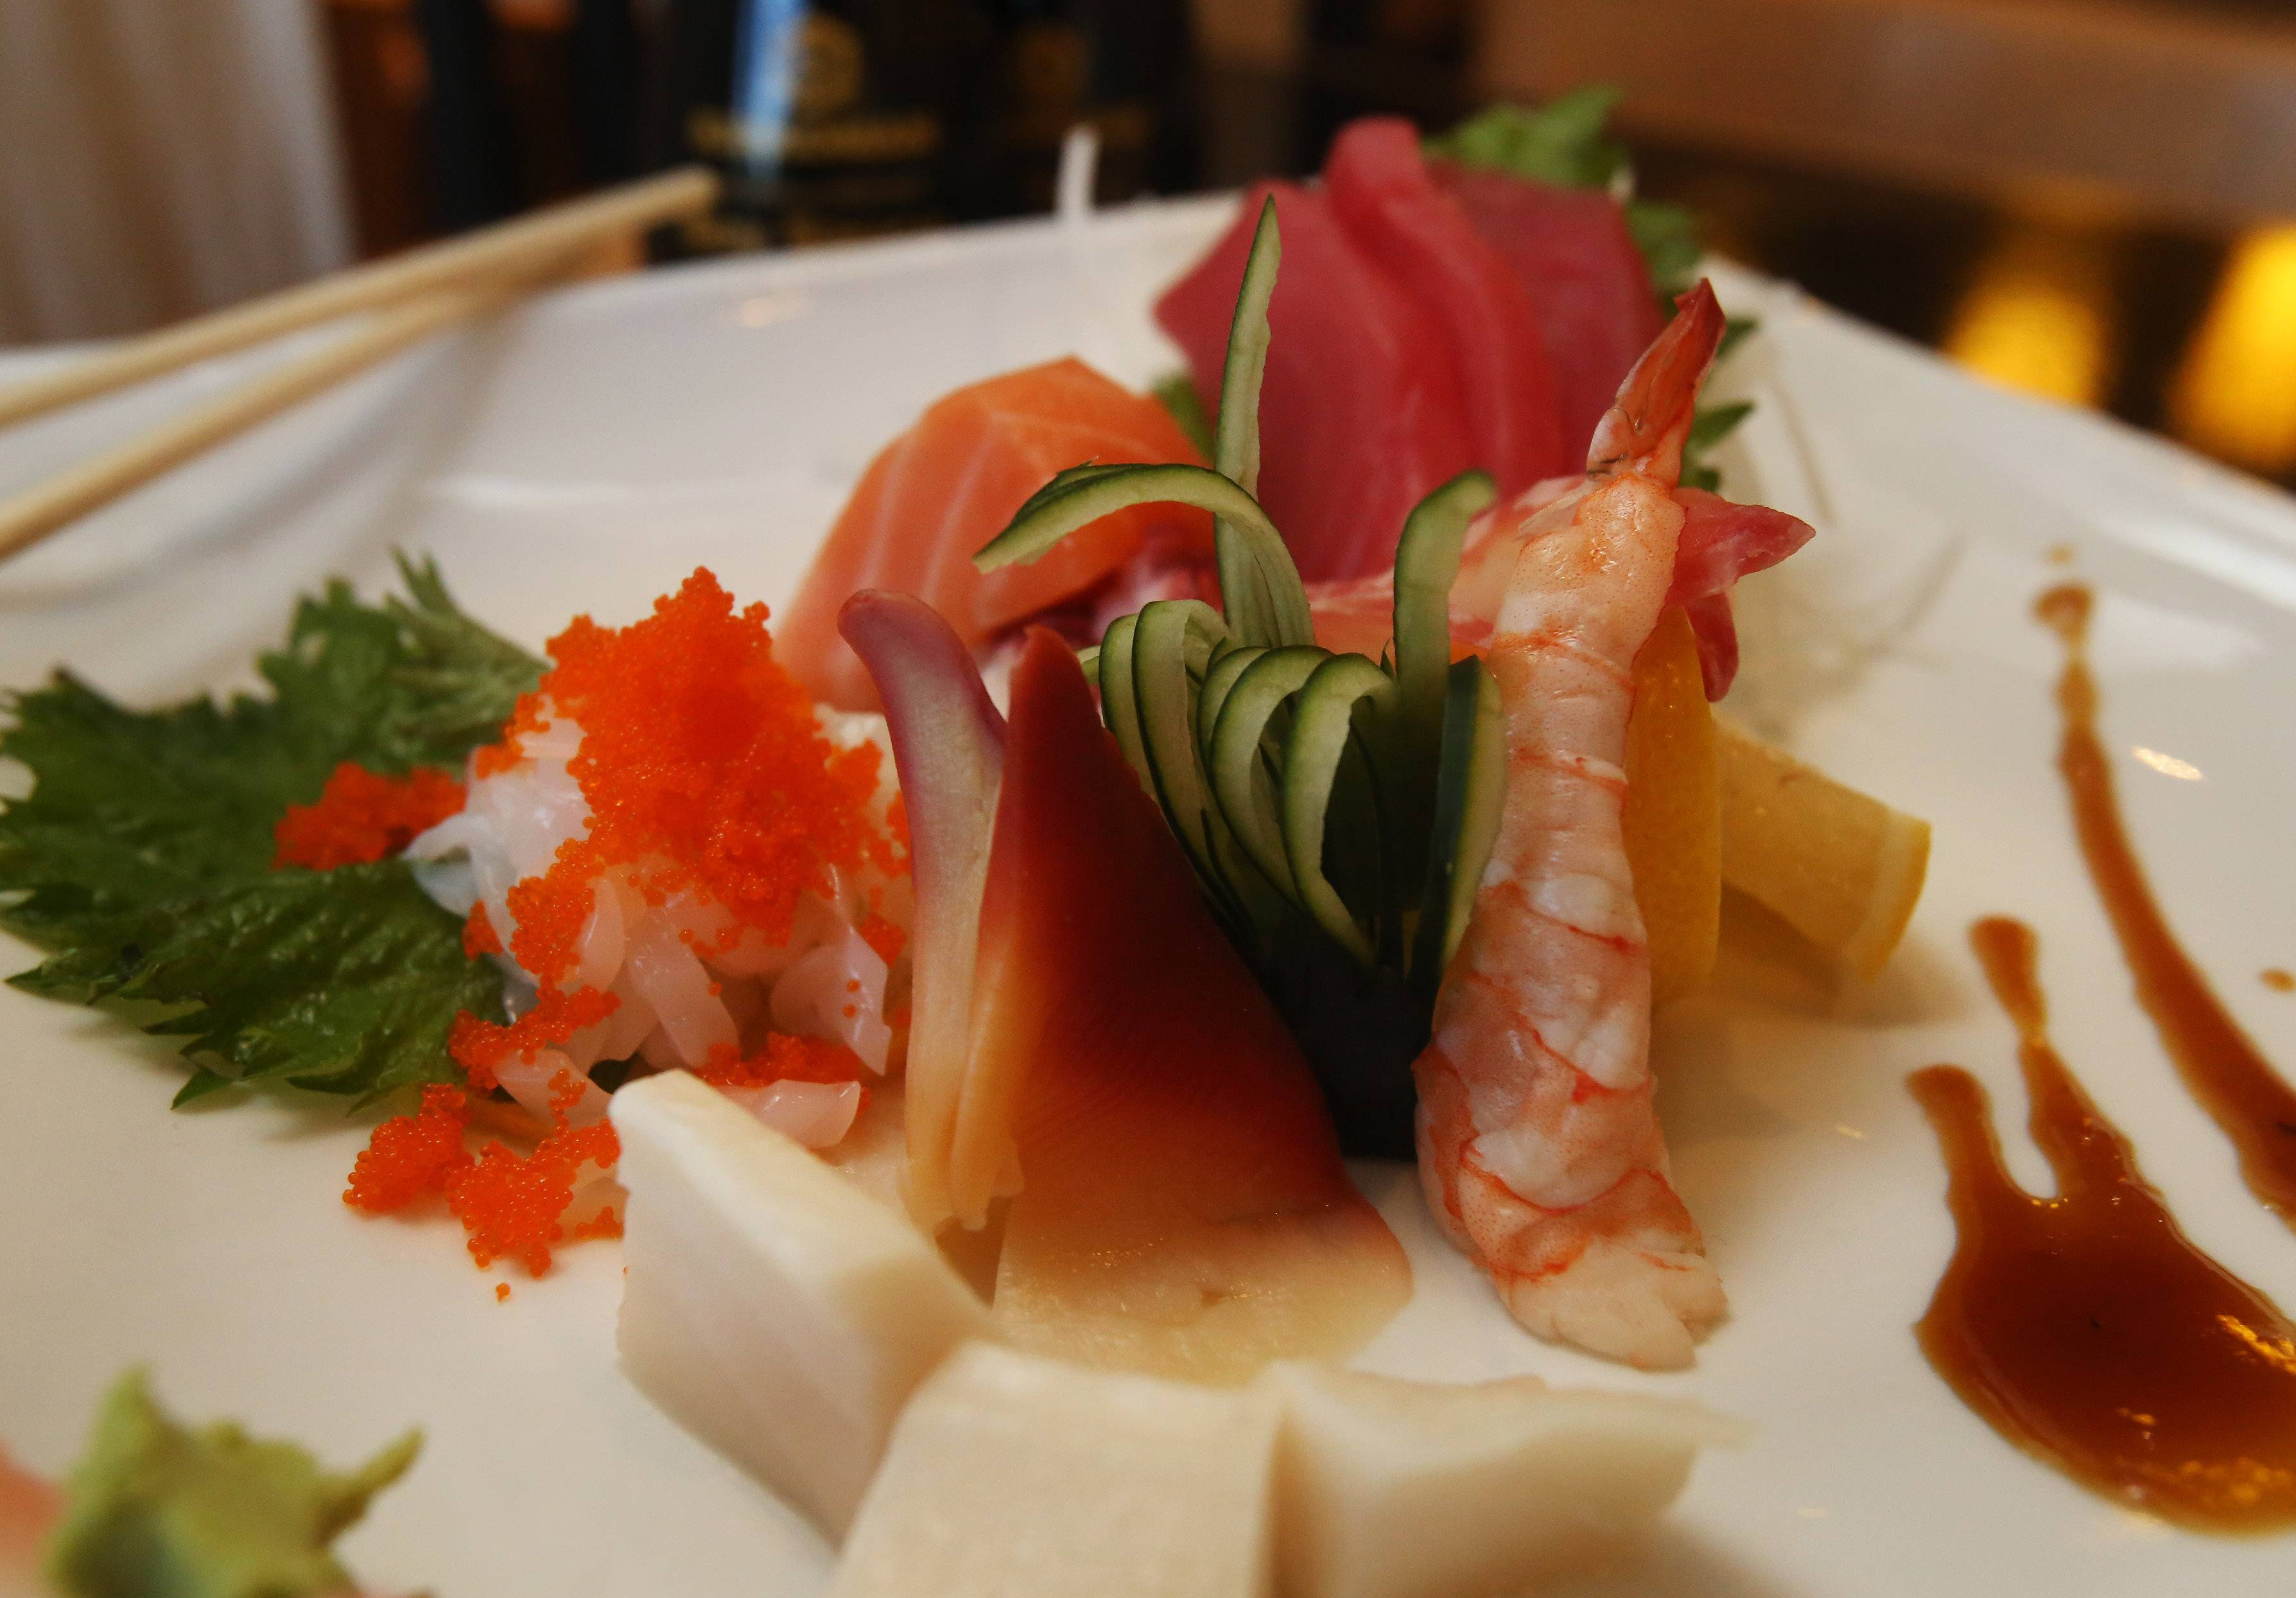 Hayashi's sashimi dinner highlights several varieties of seafood and shredded radish.